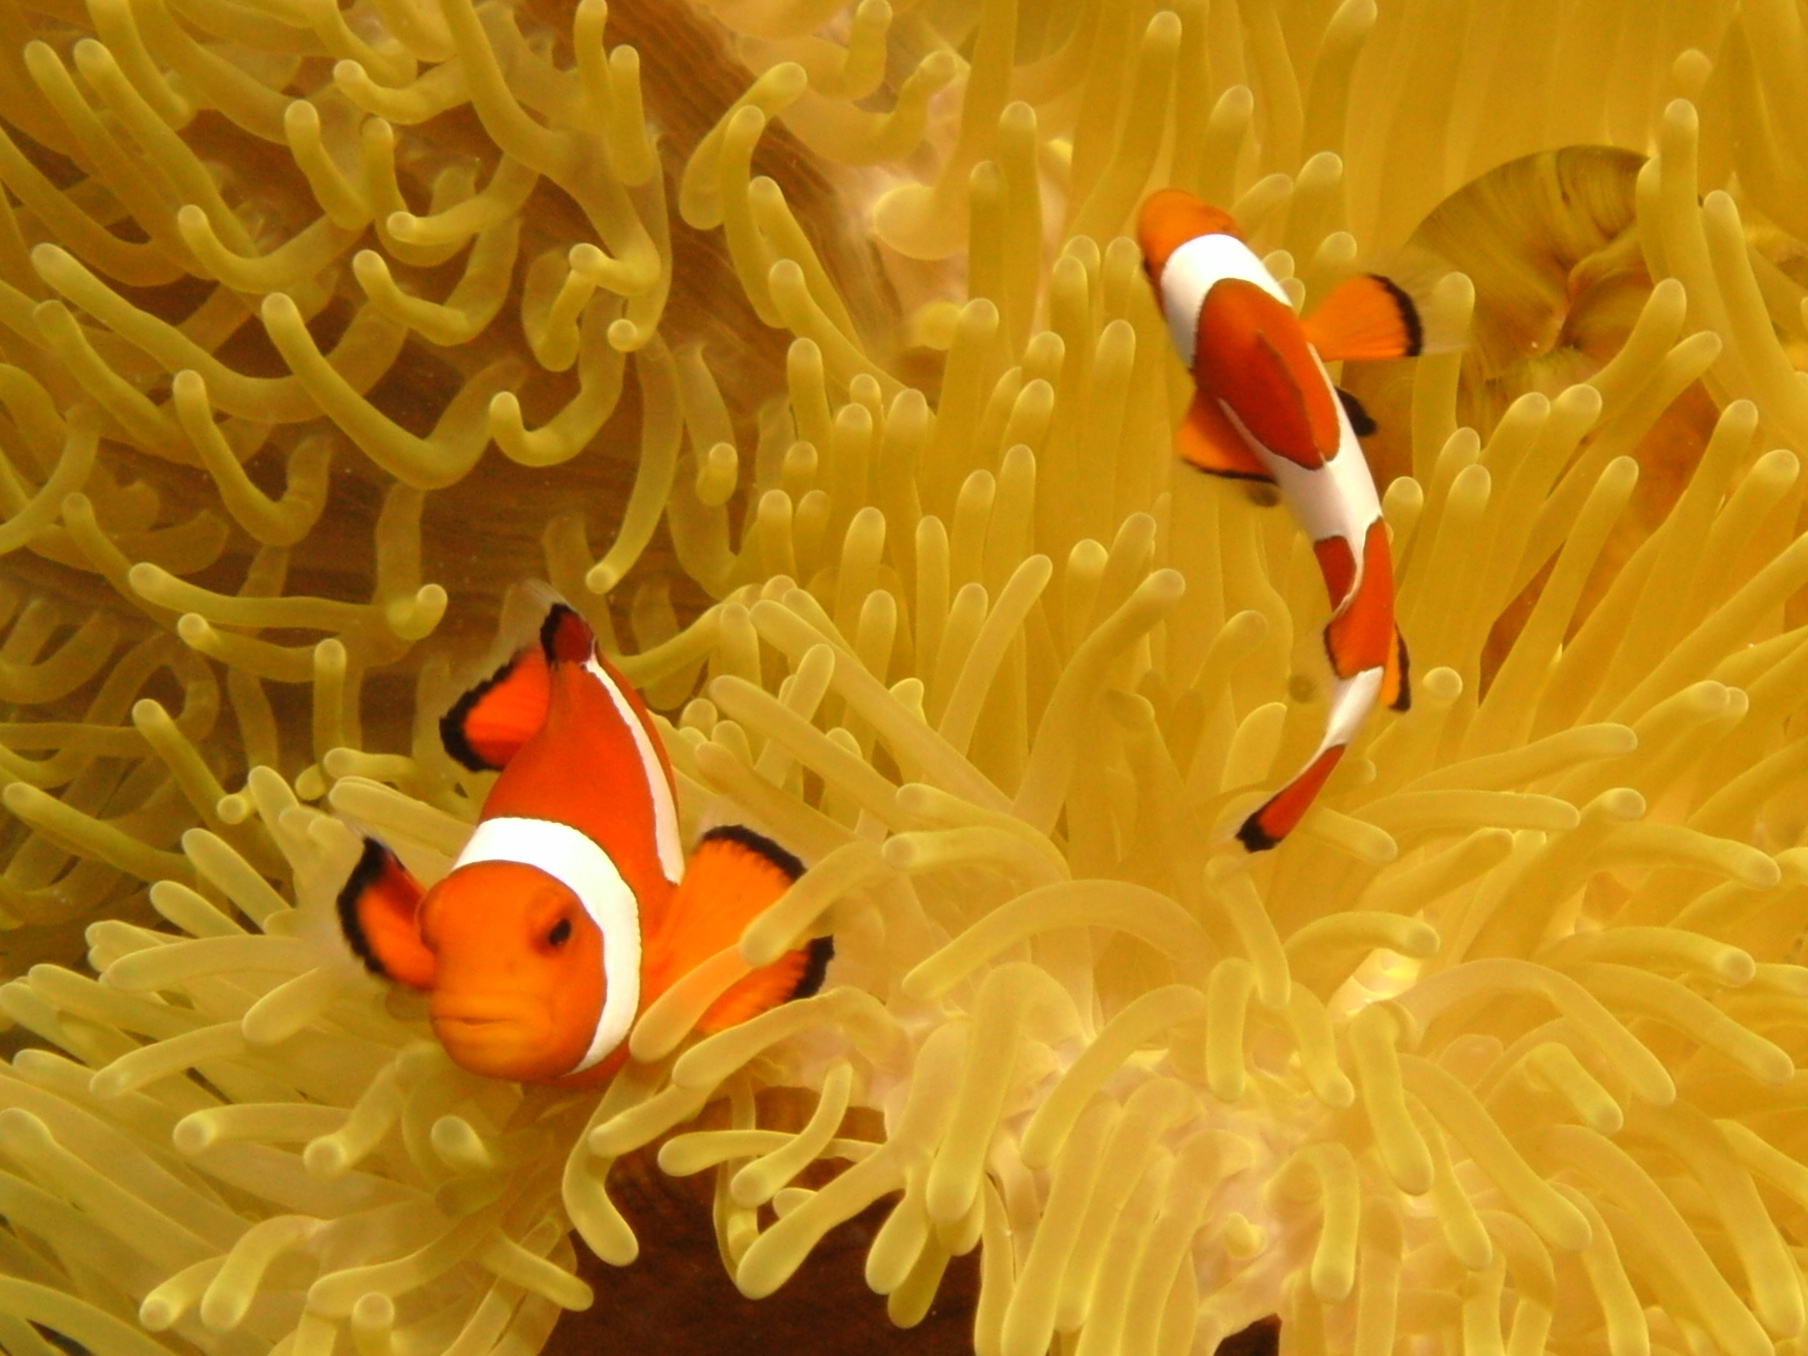 Anemone fish by Robert Kelly